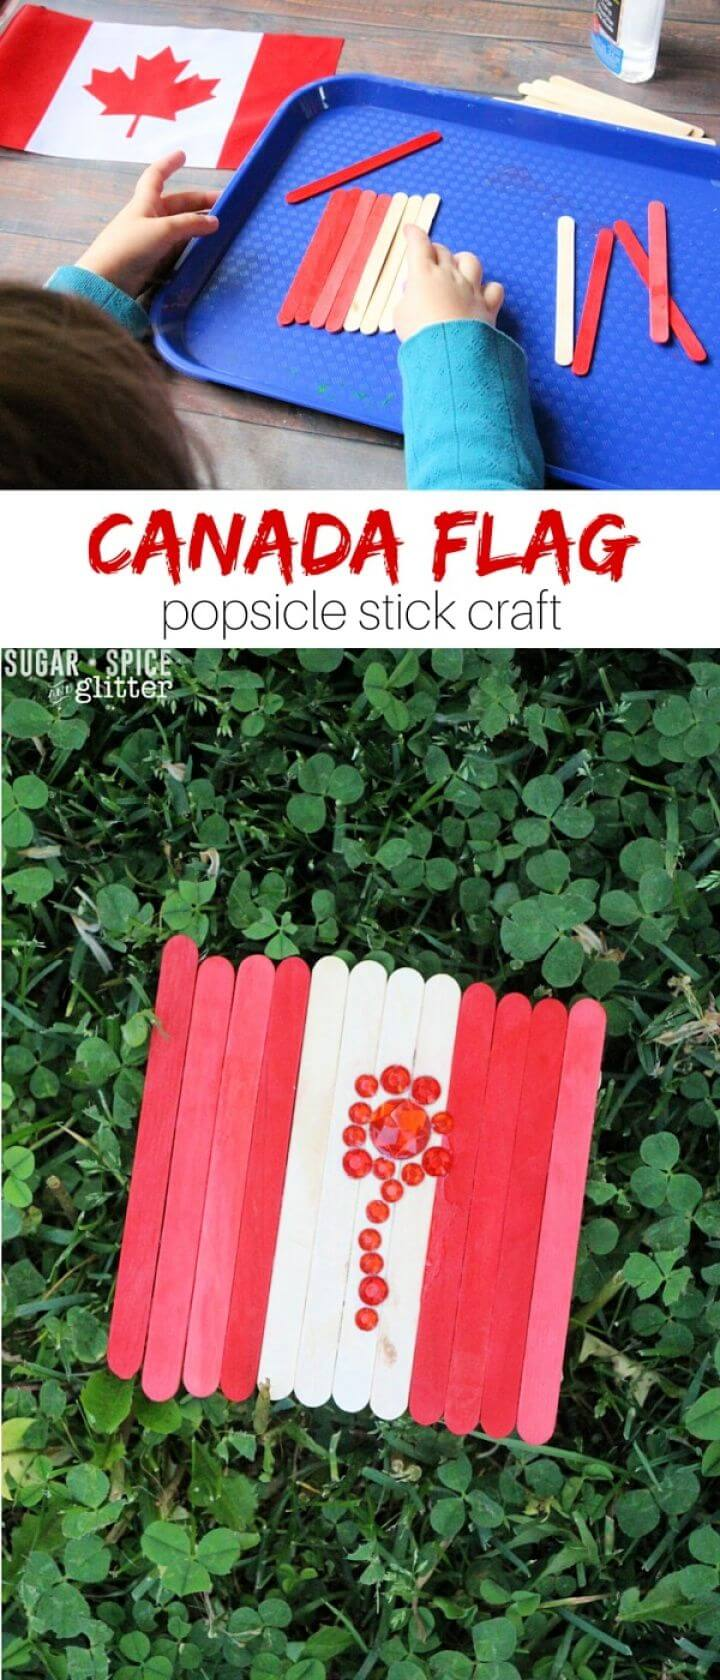 Canada Flag Popsicle Stick Craft